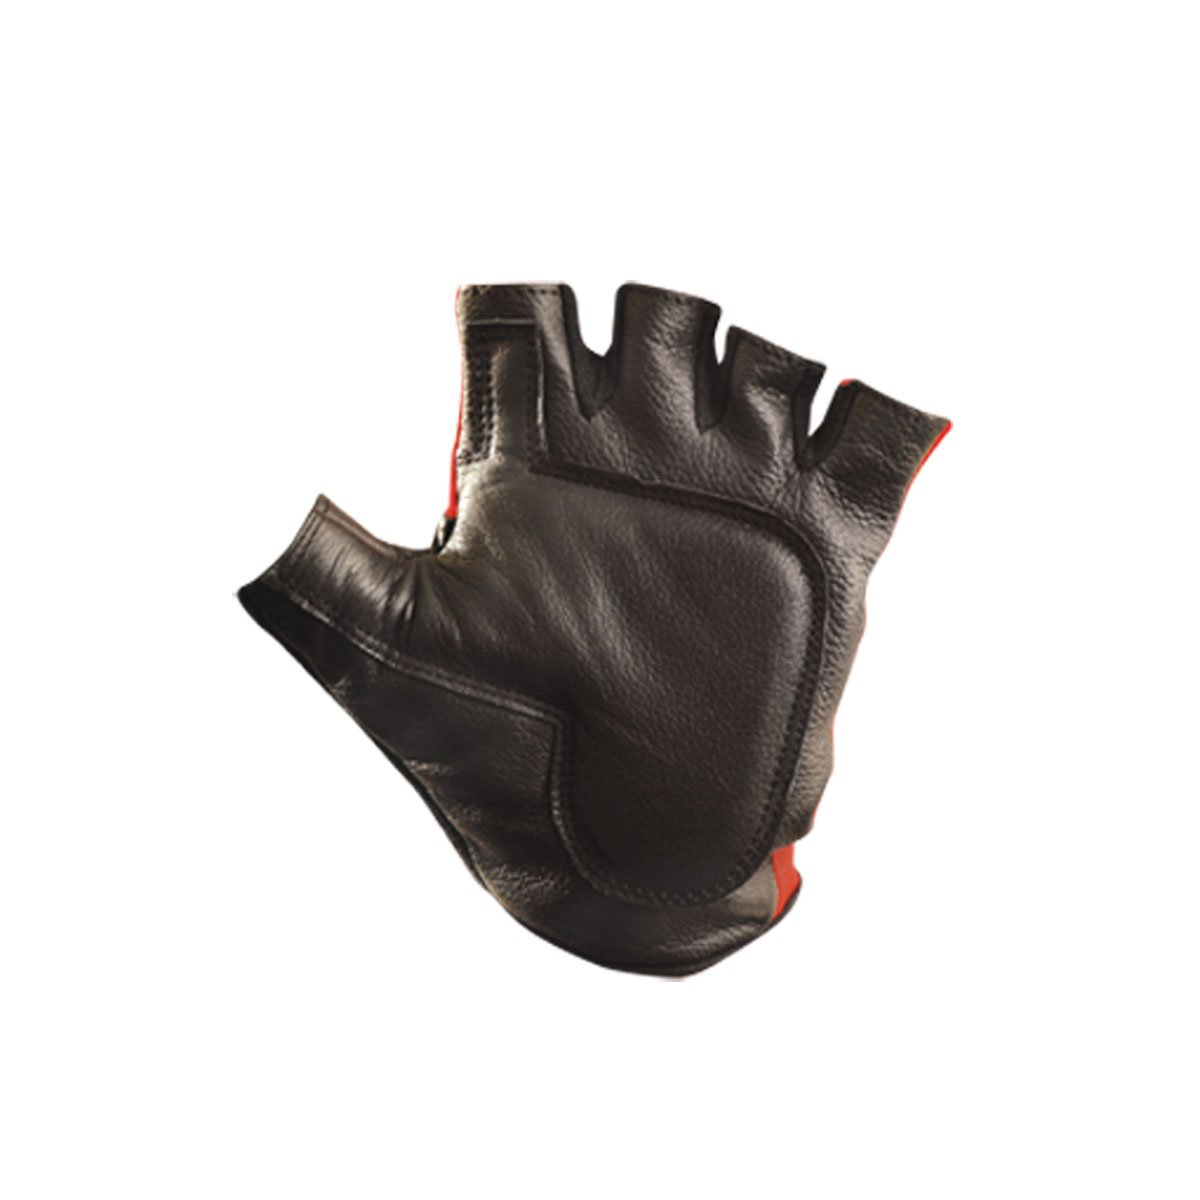 Deluxe Gel Anti-Vibration Glove L by OccuNomix (Image #2)